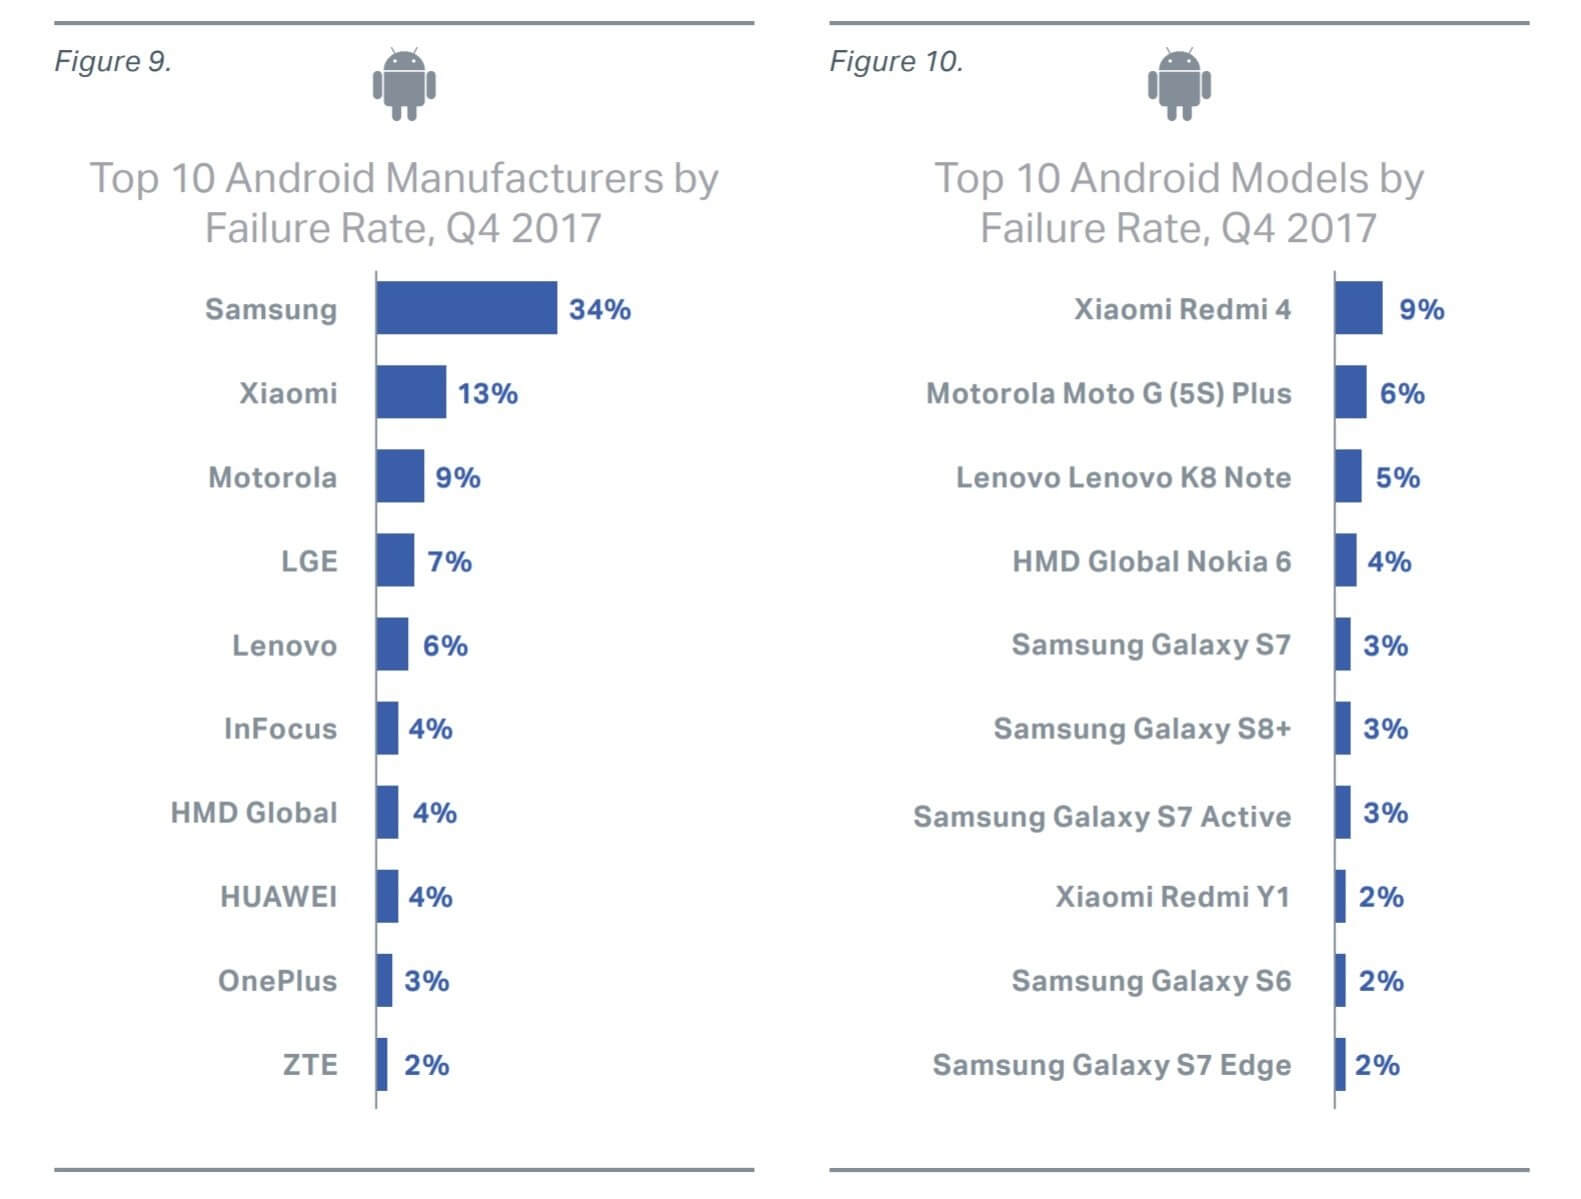 Report names smartphone models with the highest failure